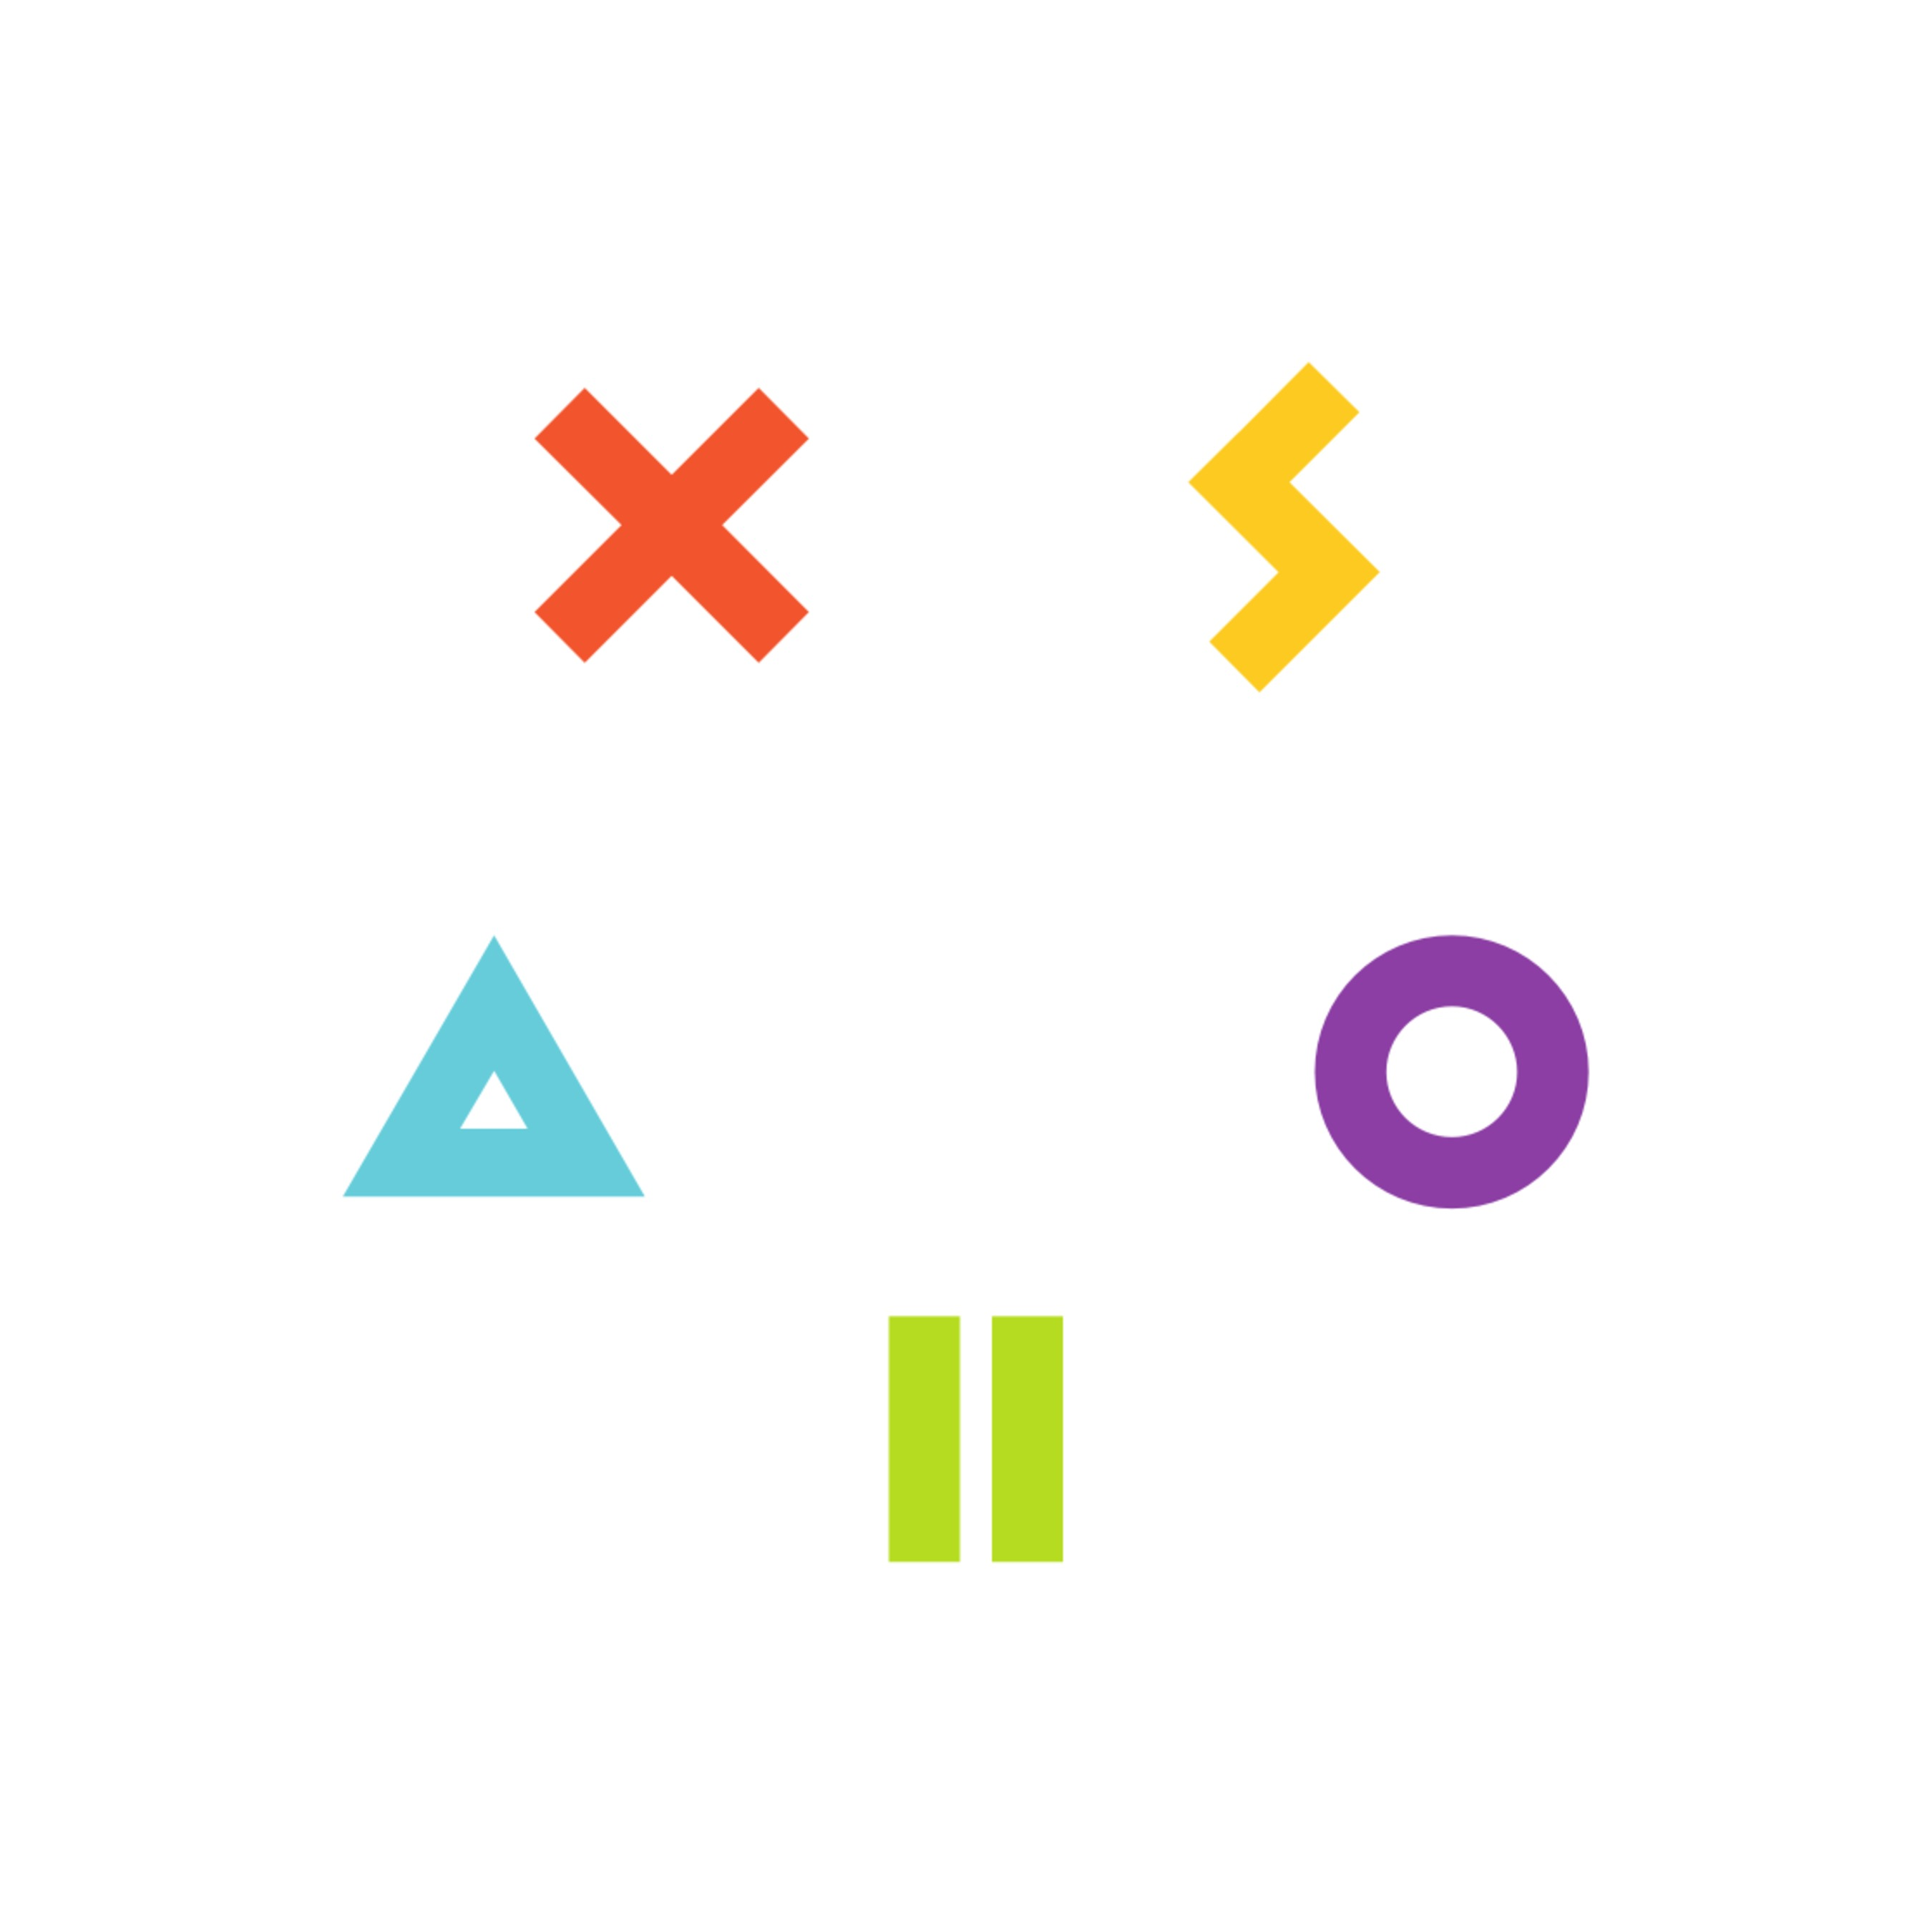 Xsolla is an e-commerce platform for video game publishing and distribution, providing comprehensive storefront management, fraud protection, user acquisition, payment and billing services for conducting business on a global scale.